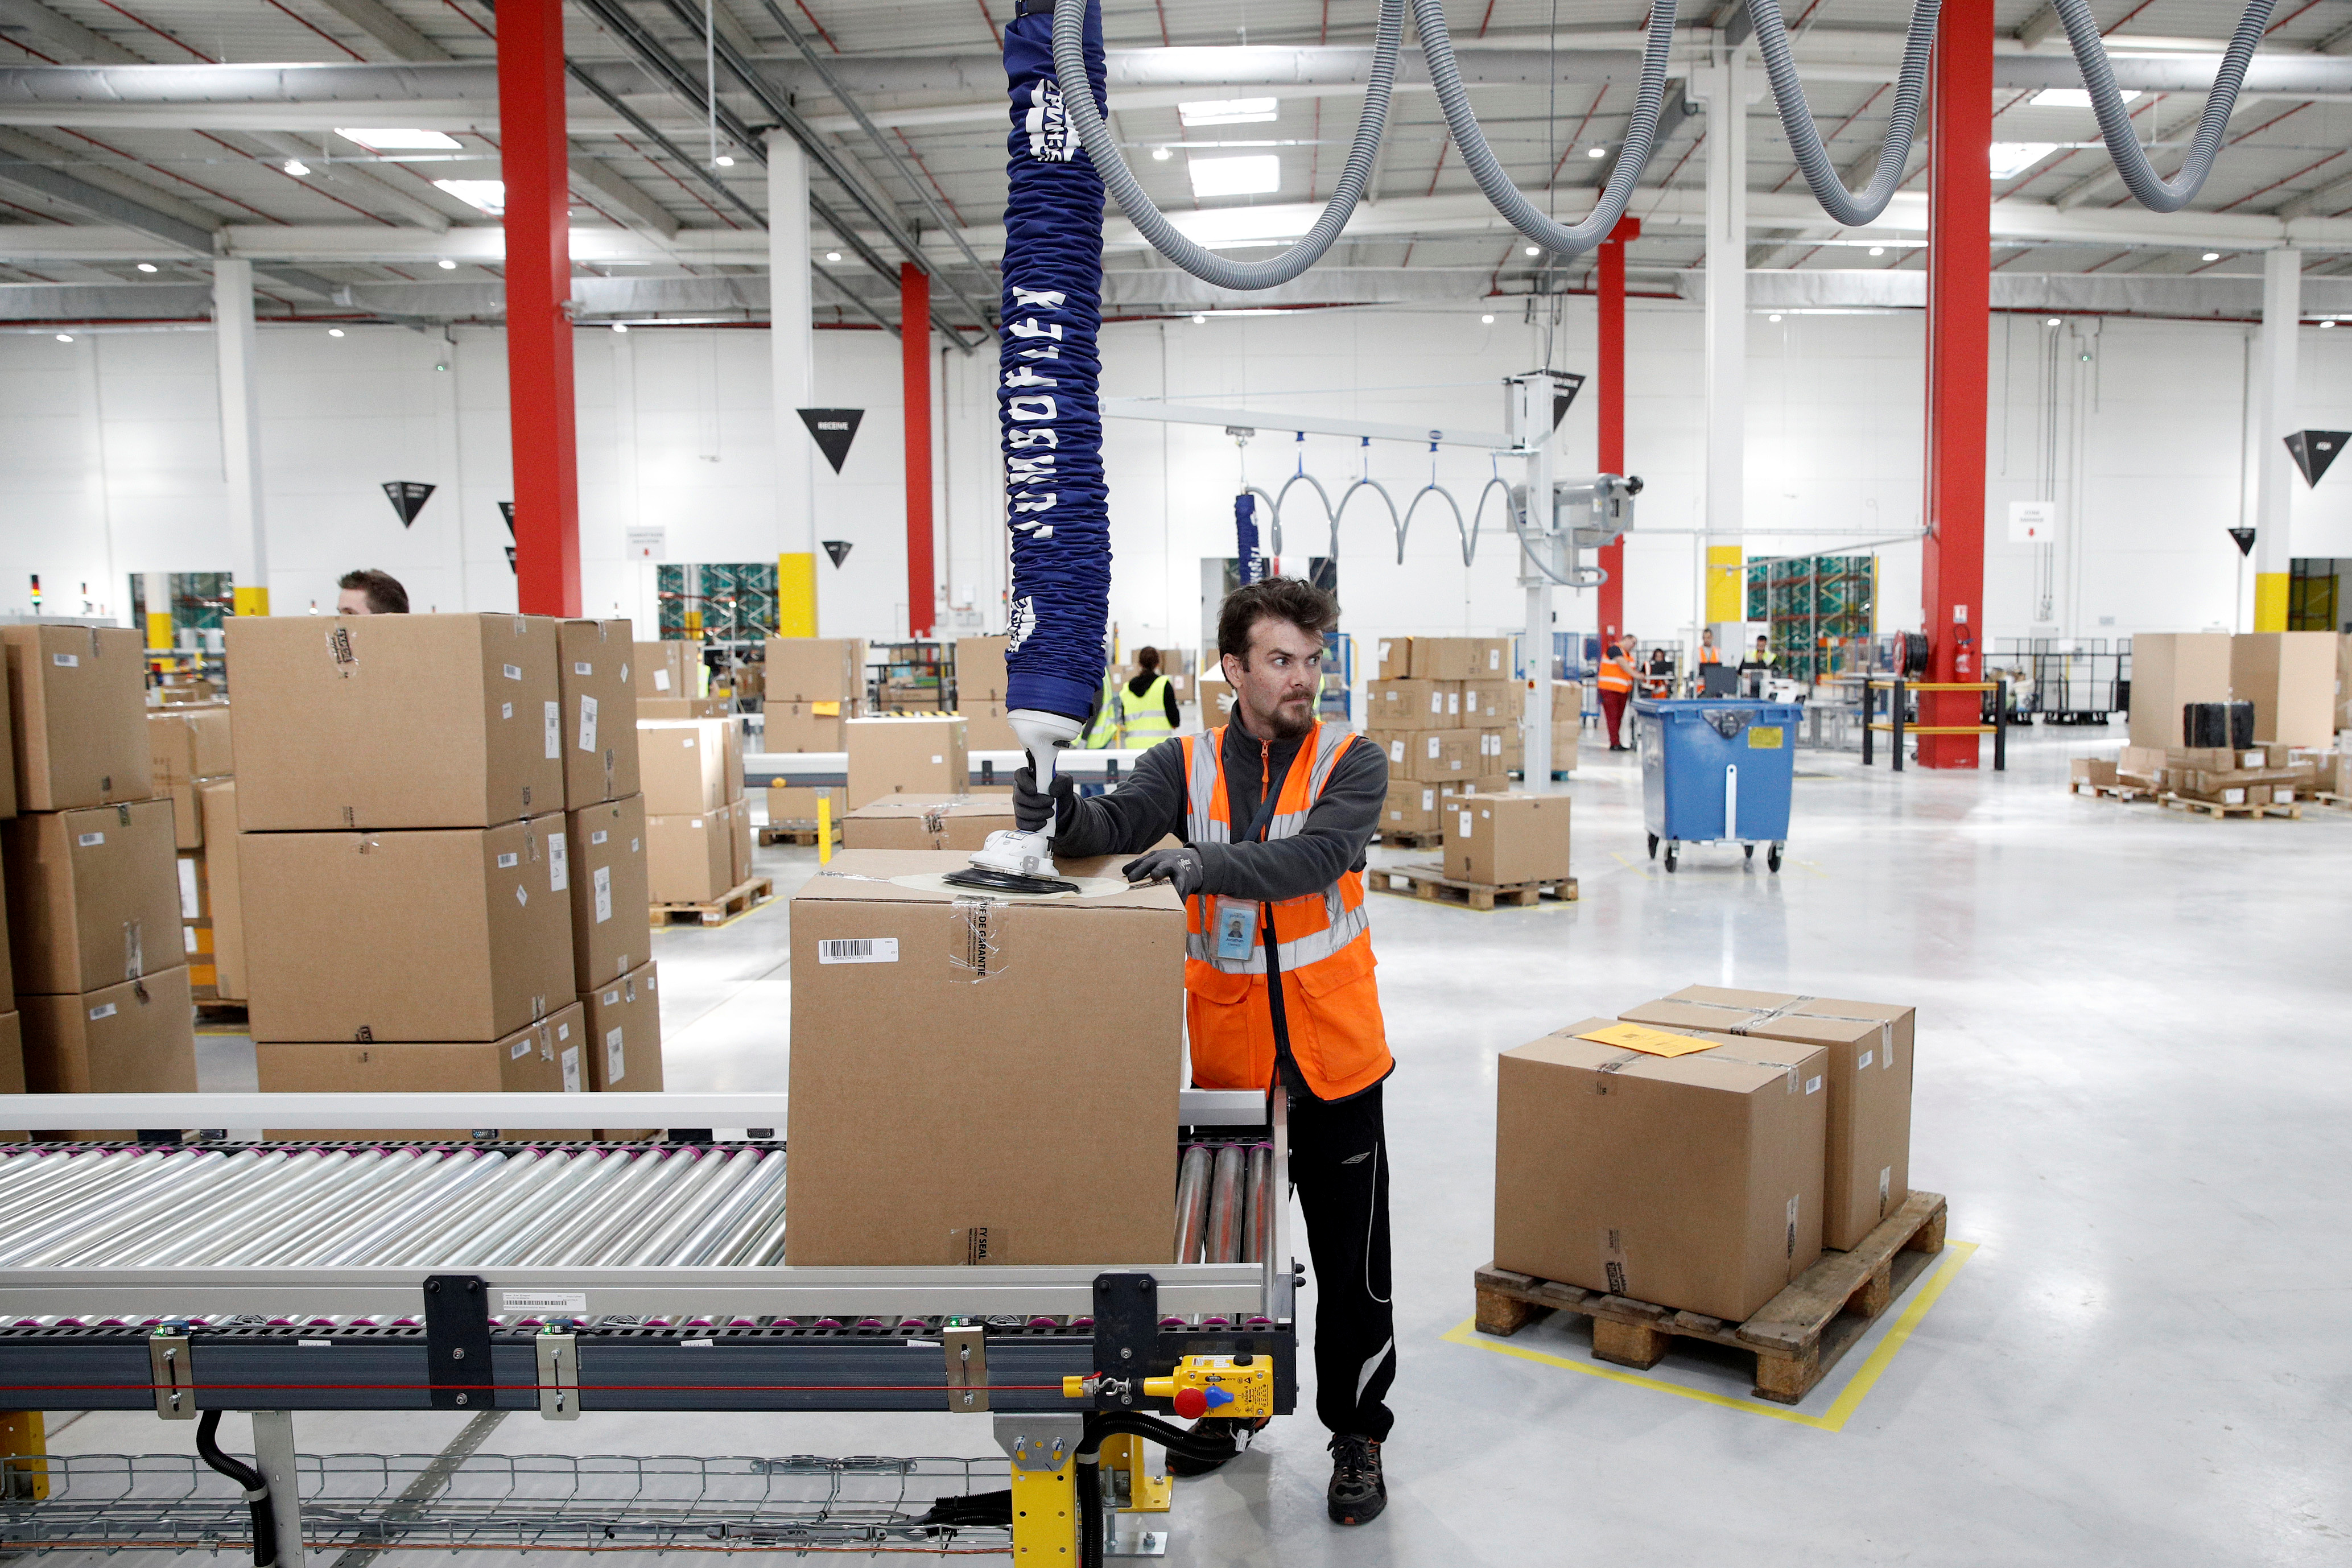 Employees at work at an Amazon factory.